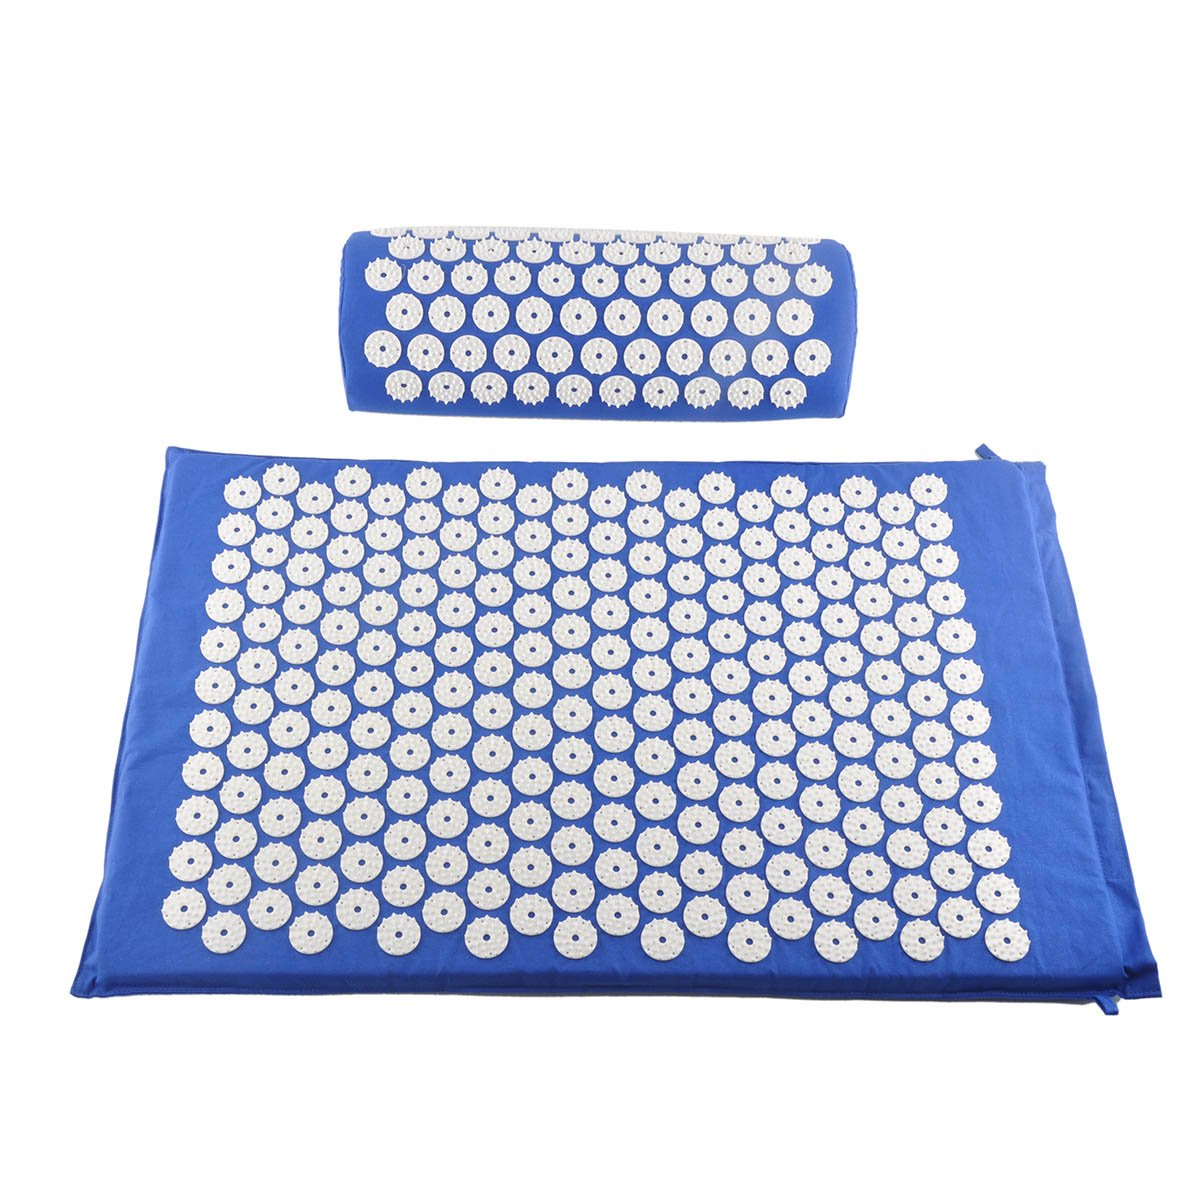 Amazon com : Acupressure Mat and Pillow Set for Back/Neck